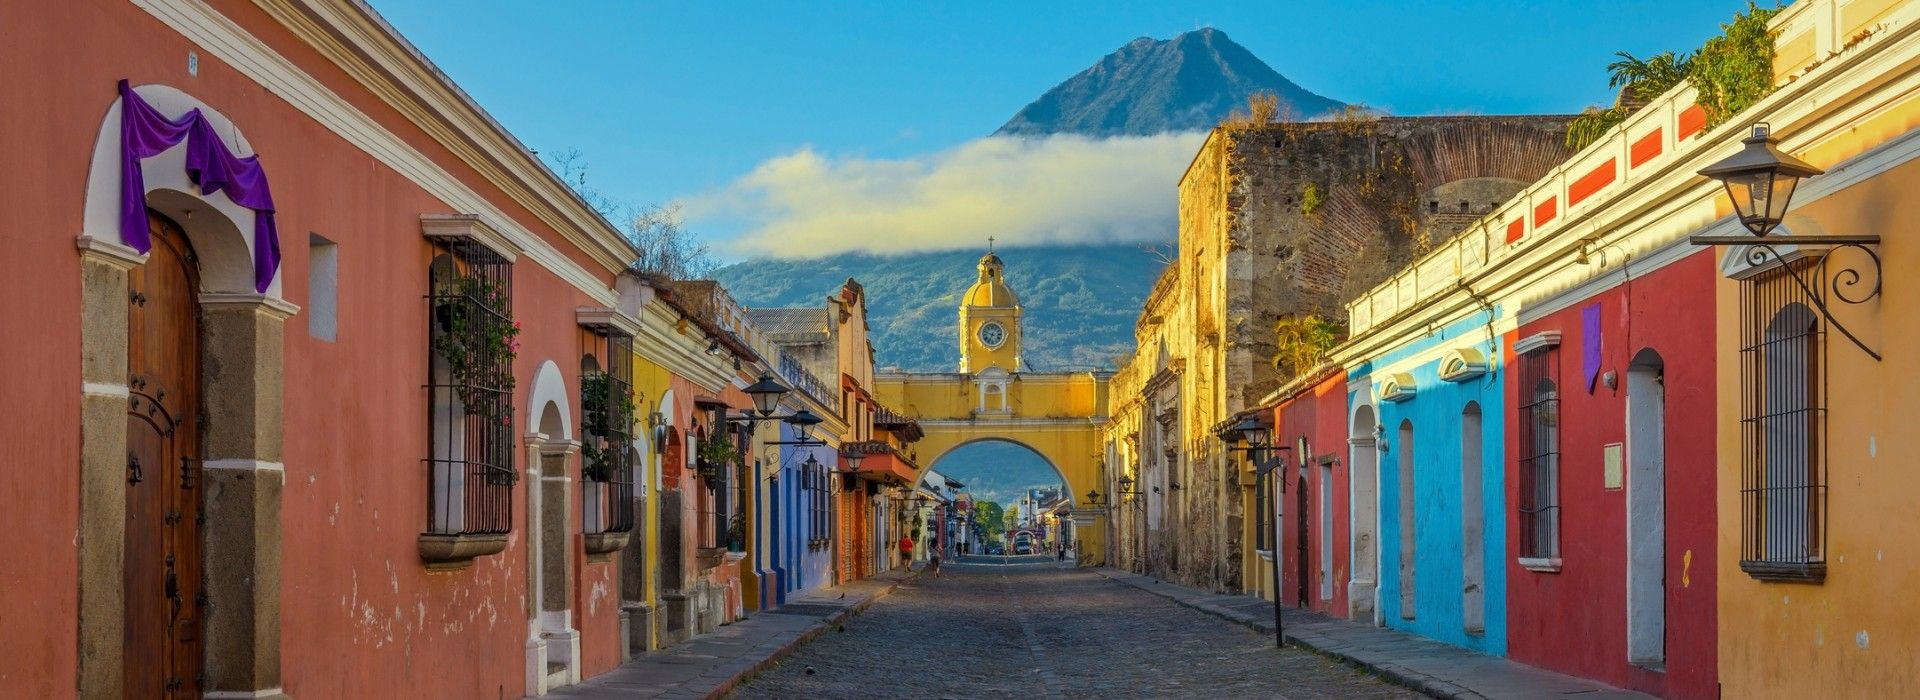 National parks Tours in Central America